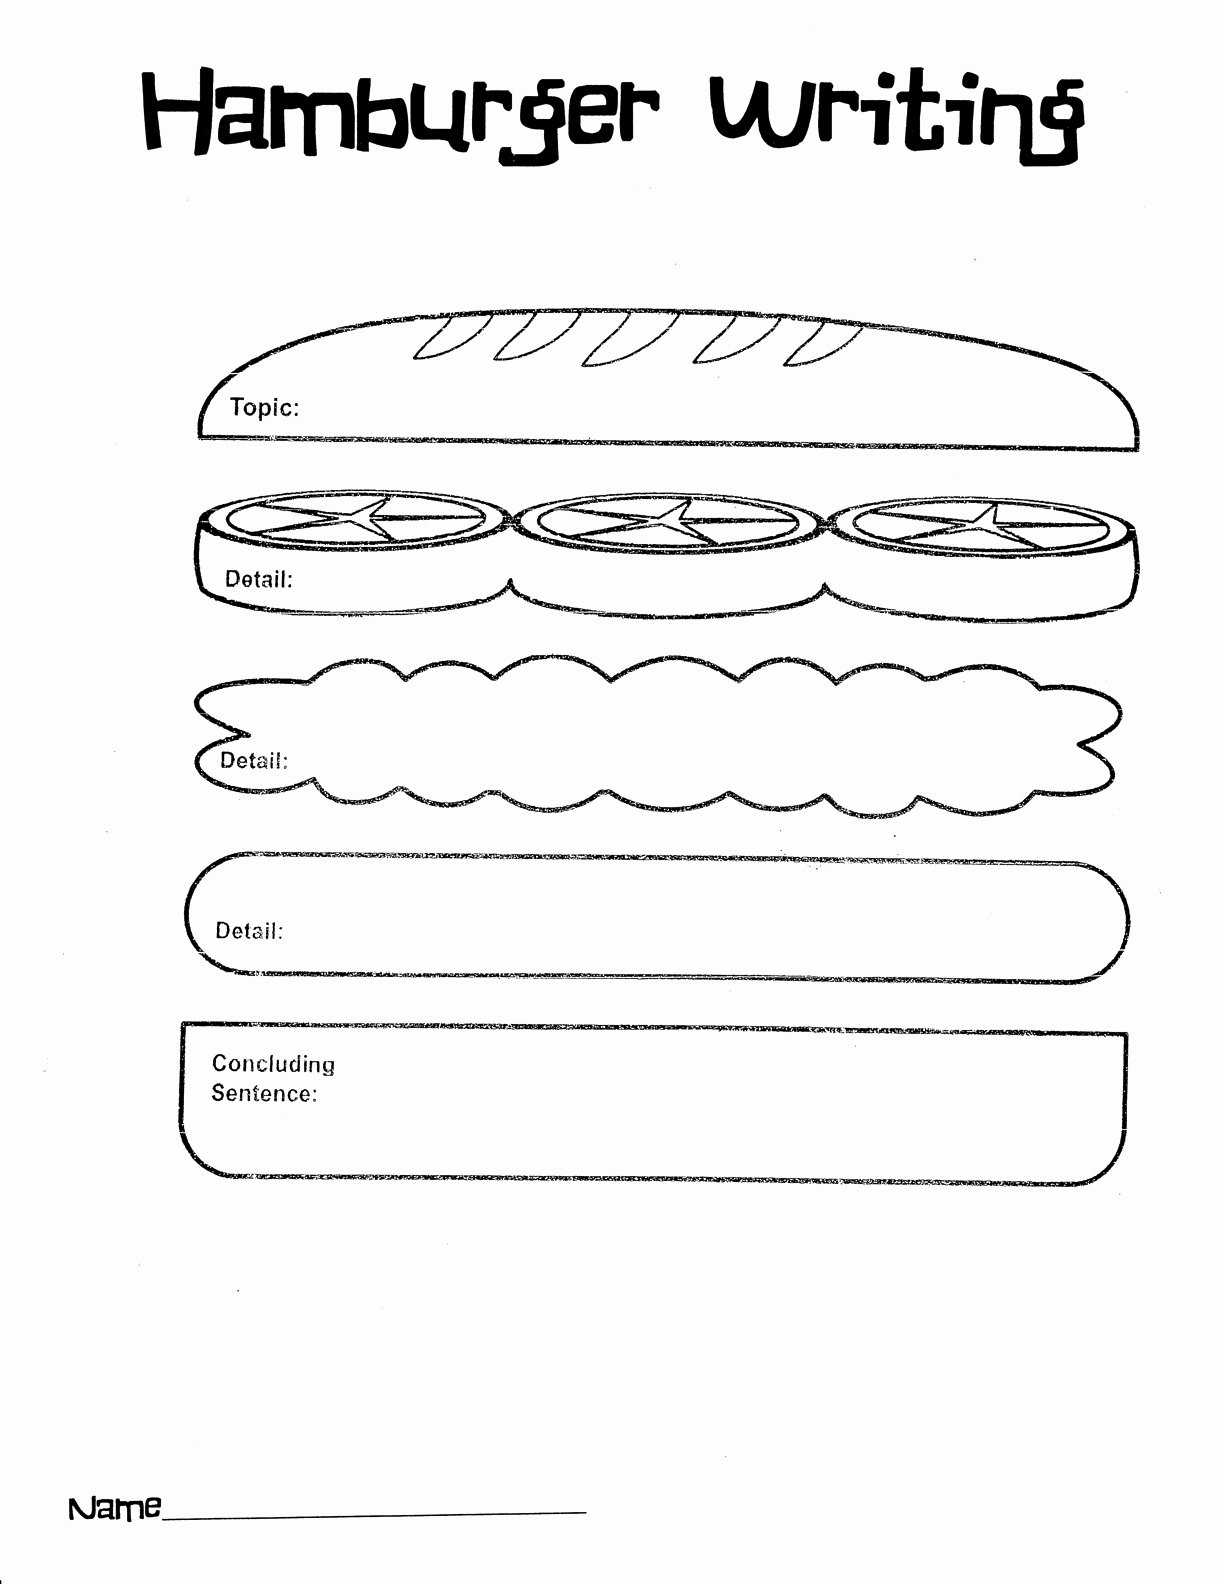 Third Grade Writing Worksheet Fresh 2nd Grade Writing Worksheets Best Coloring Pages for Kids